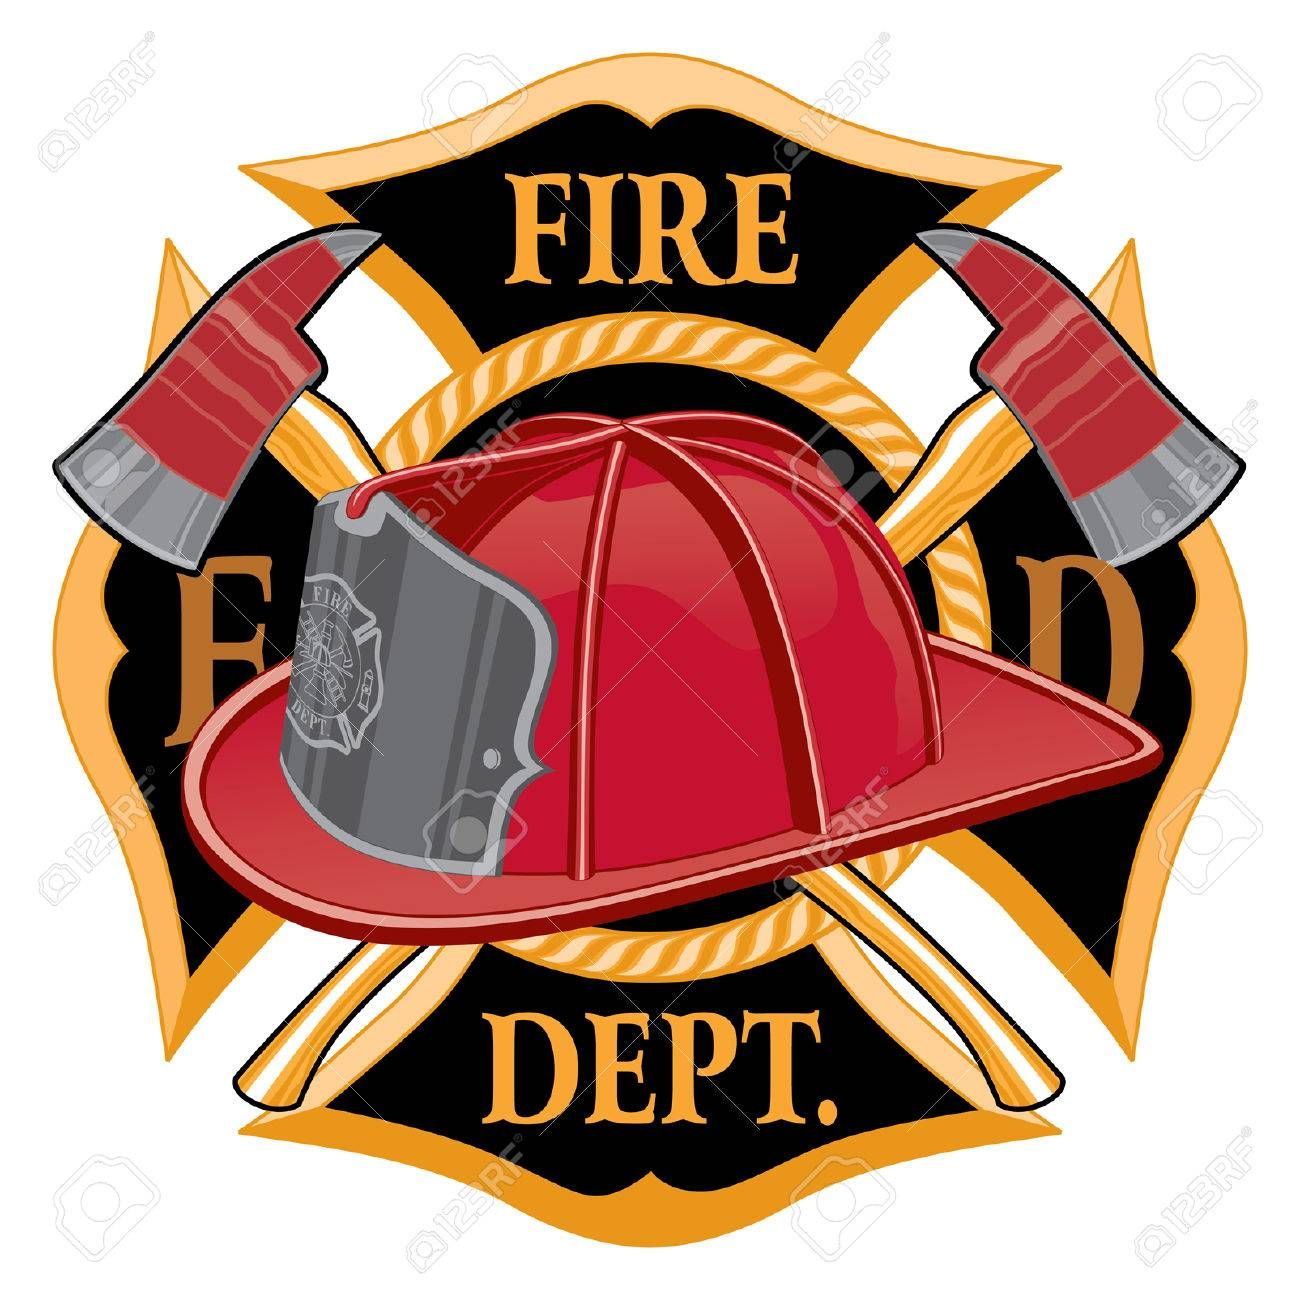 Fire Department Cross Symbol Is An Illustration Of A Fireman Or